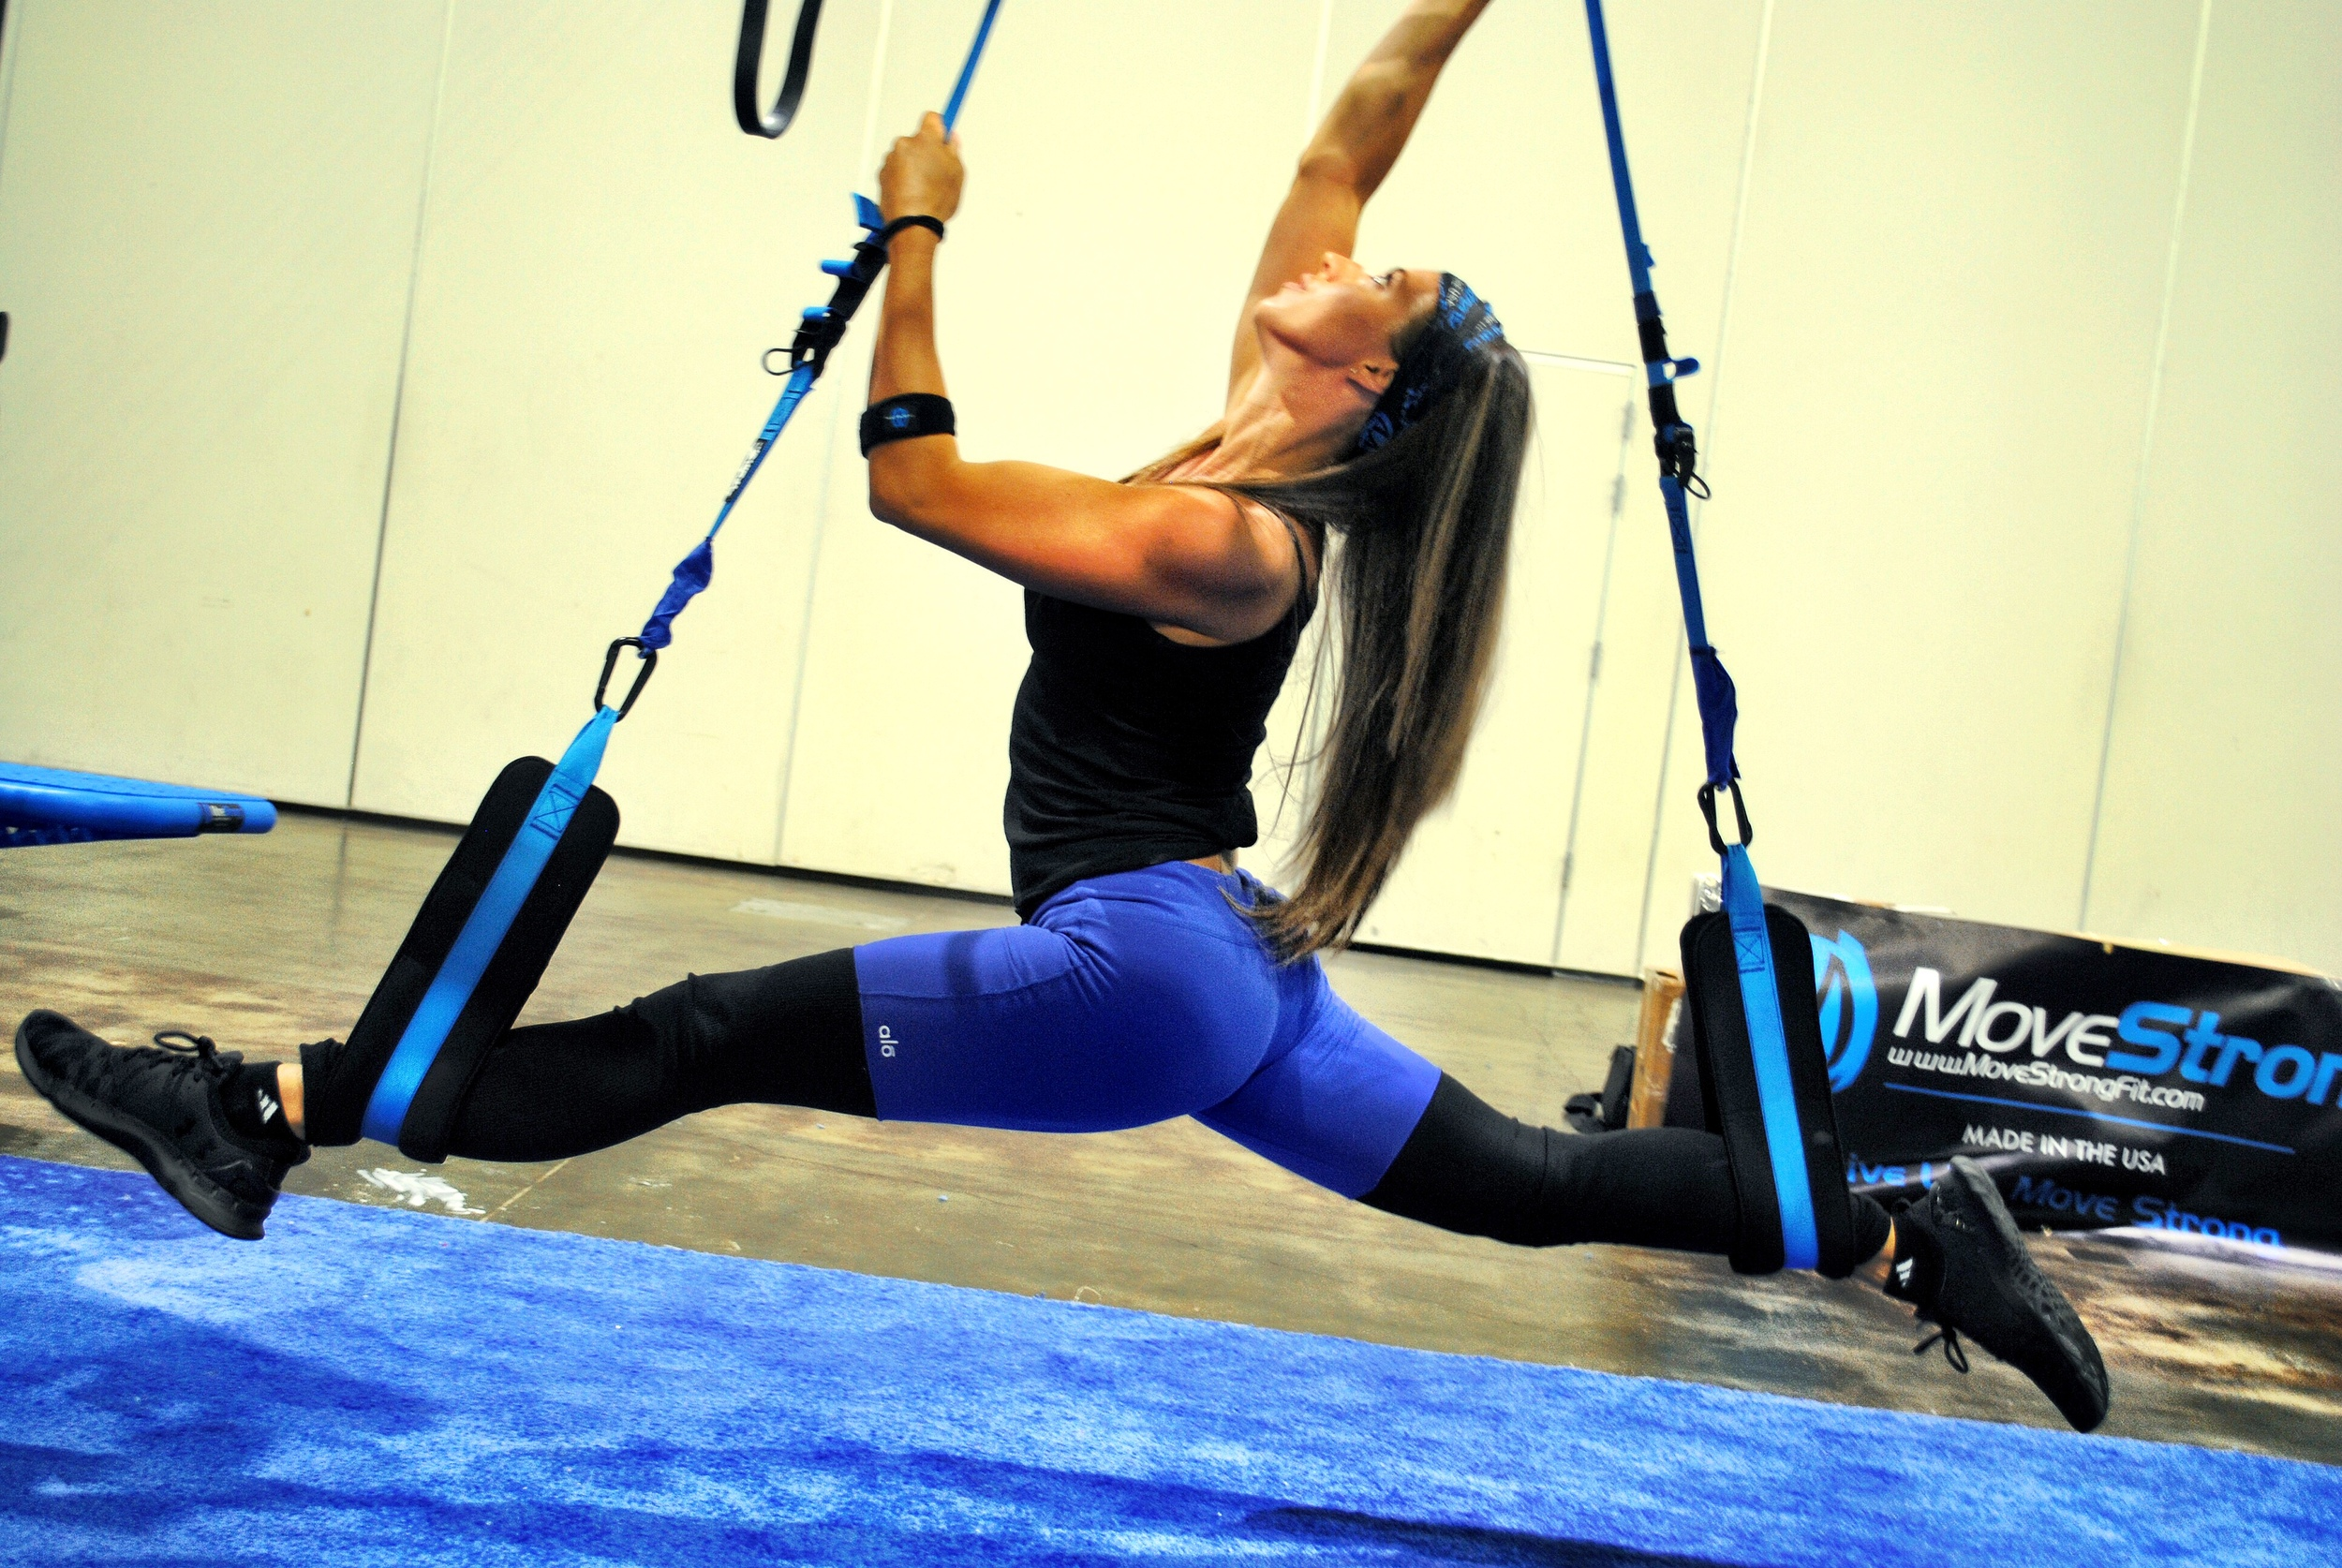 Elevate Suspension trainer split